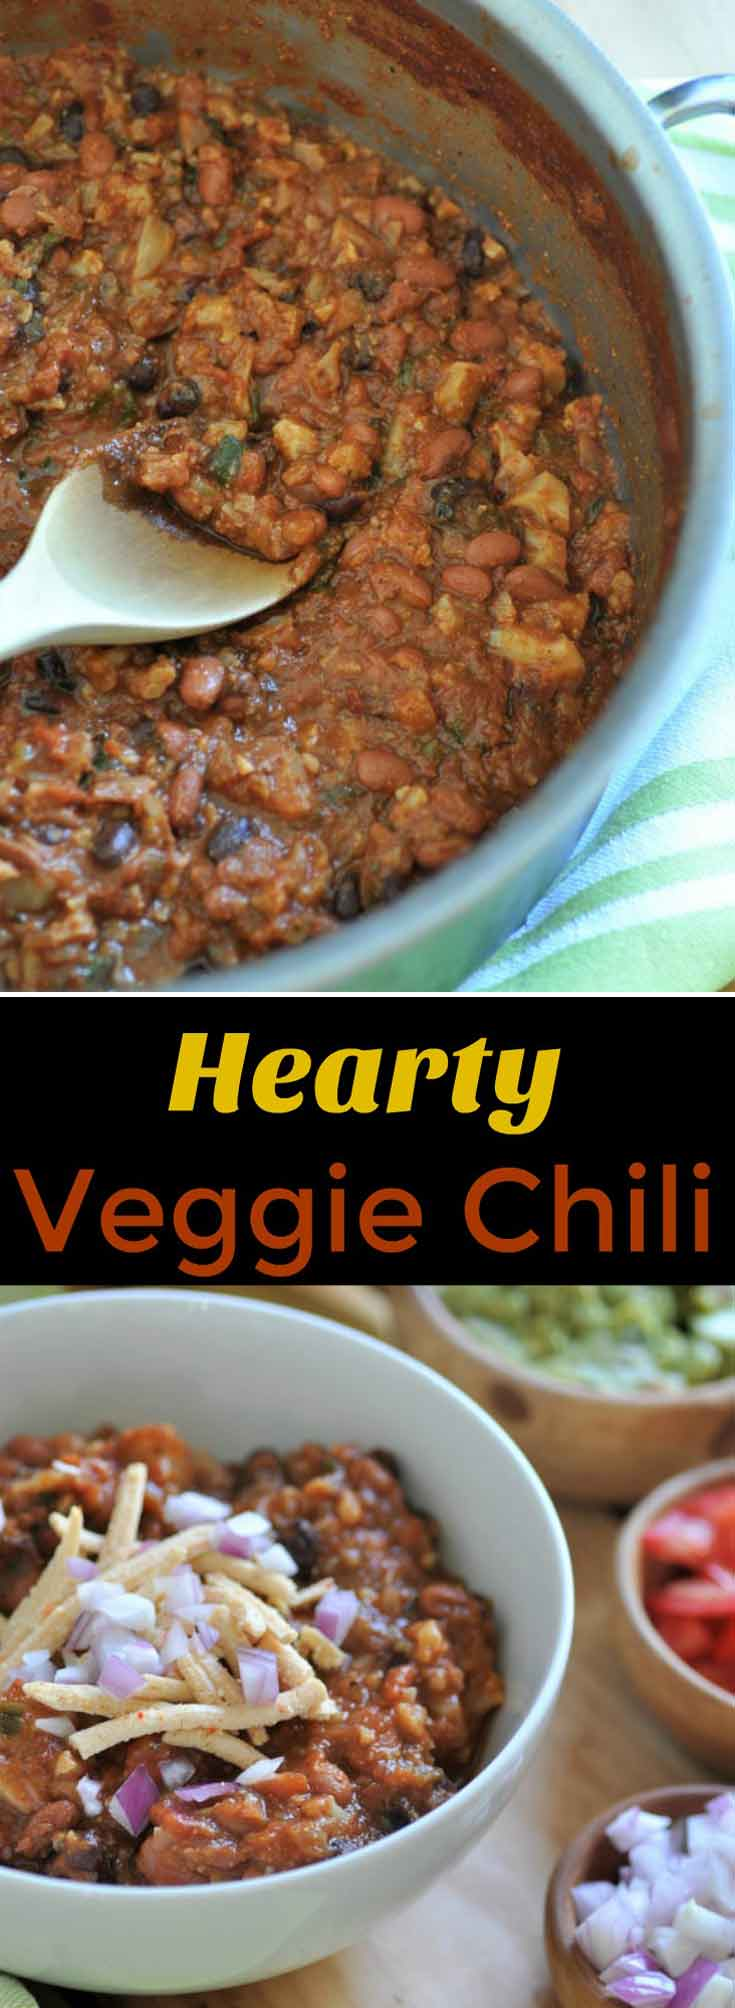 Hearty and meaty vegan chili that will satisfy meat eaters. The secret ingredient is cauliflower.